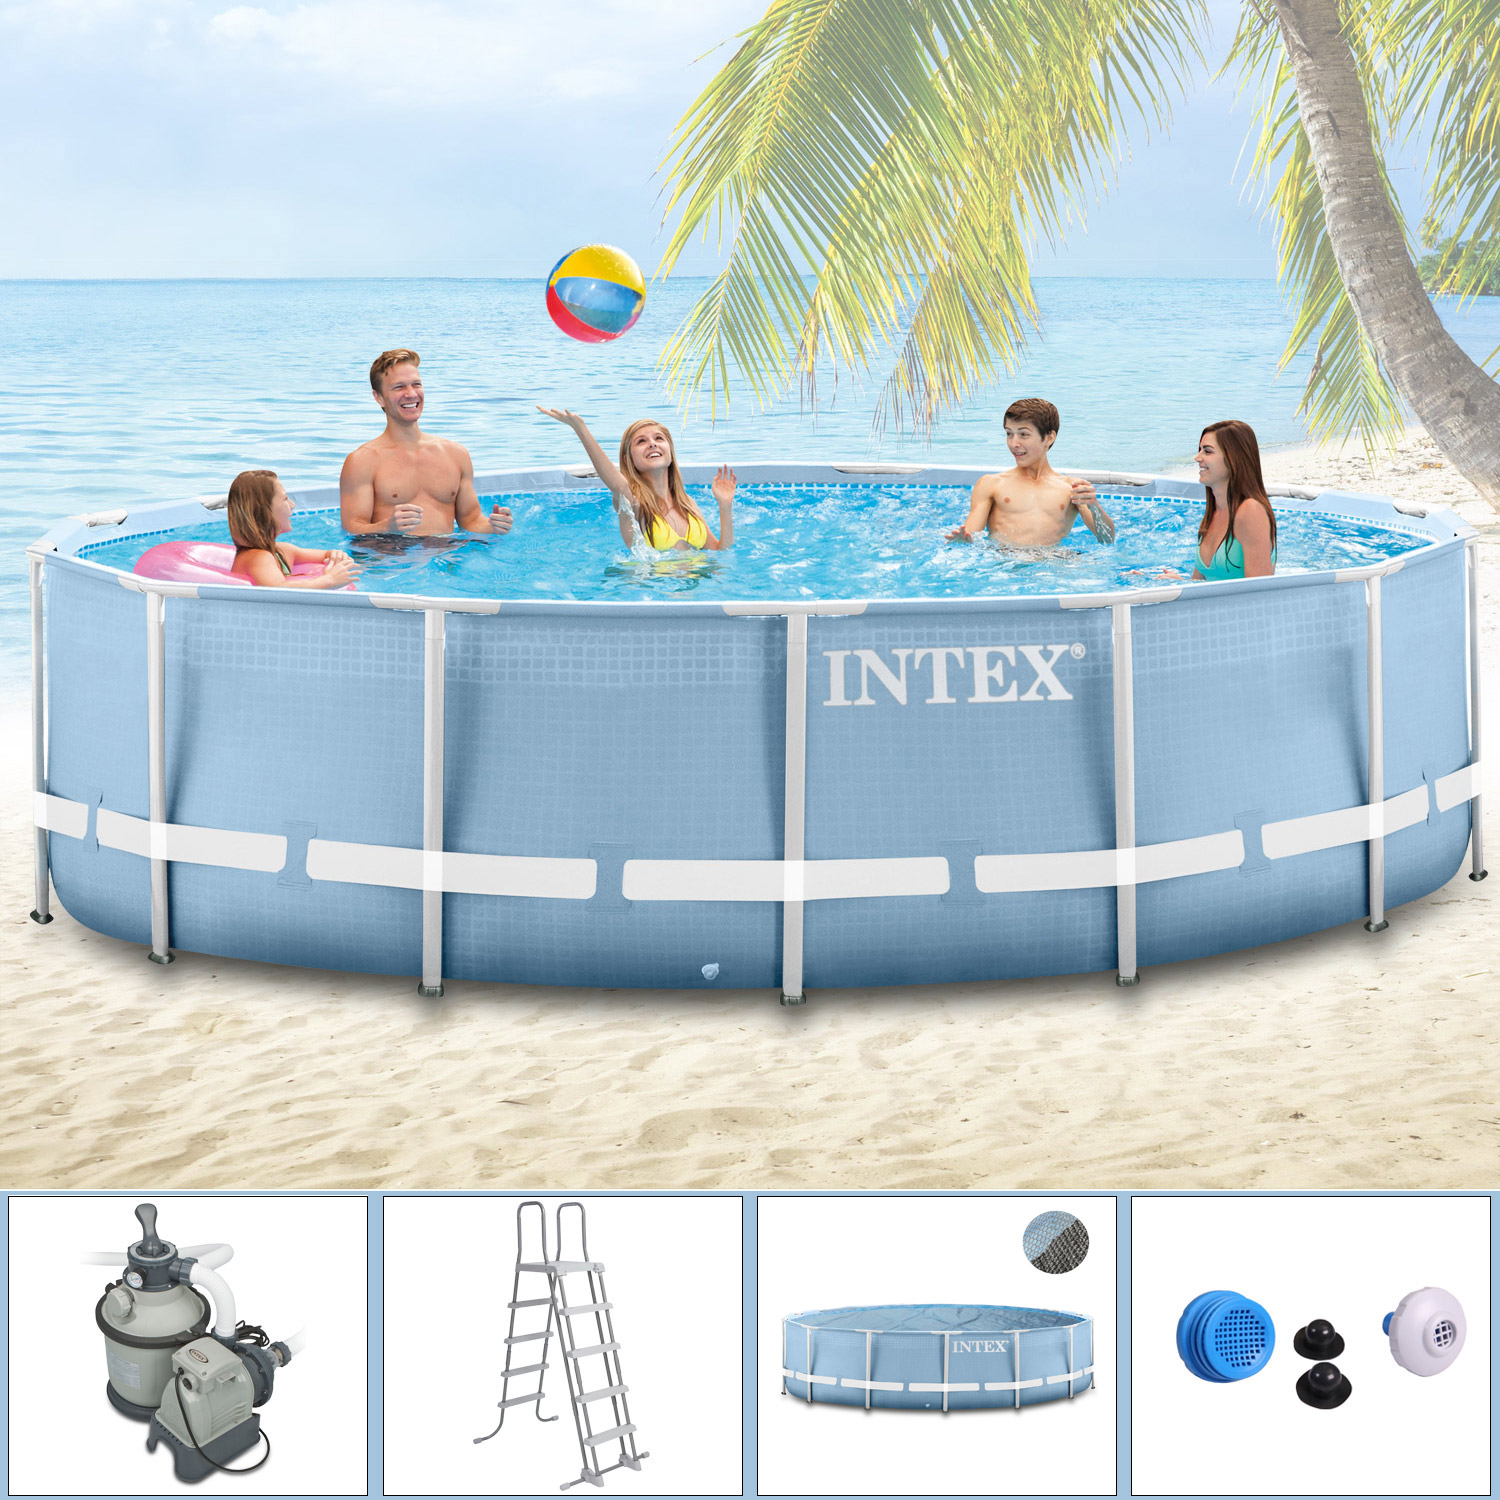 intex 366x91 schwimmbecken mit sandfilter pool schwimmbad. Black Bedroom Furniture Sets. Home Design Ideas